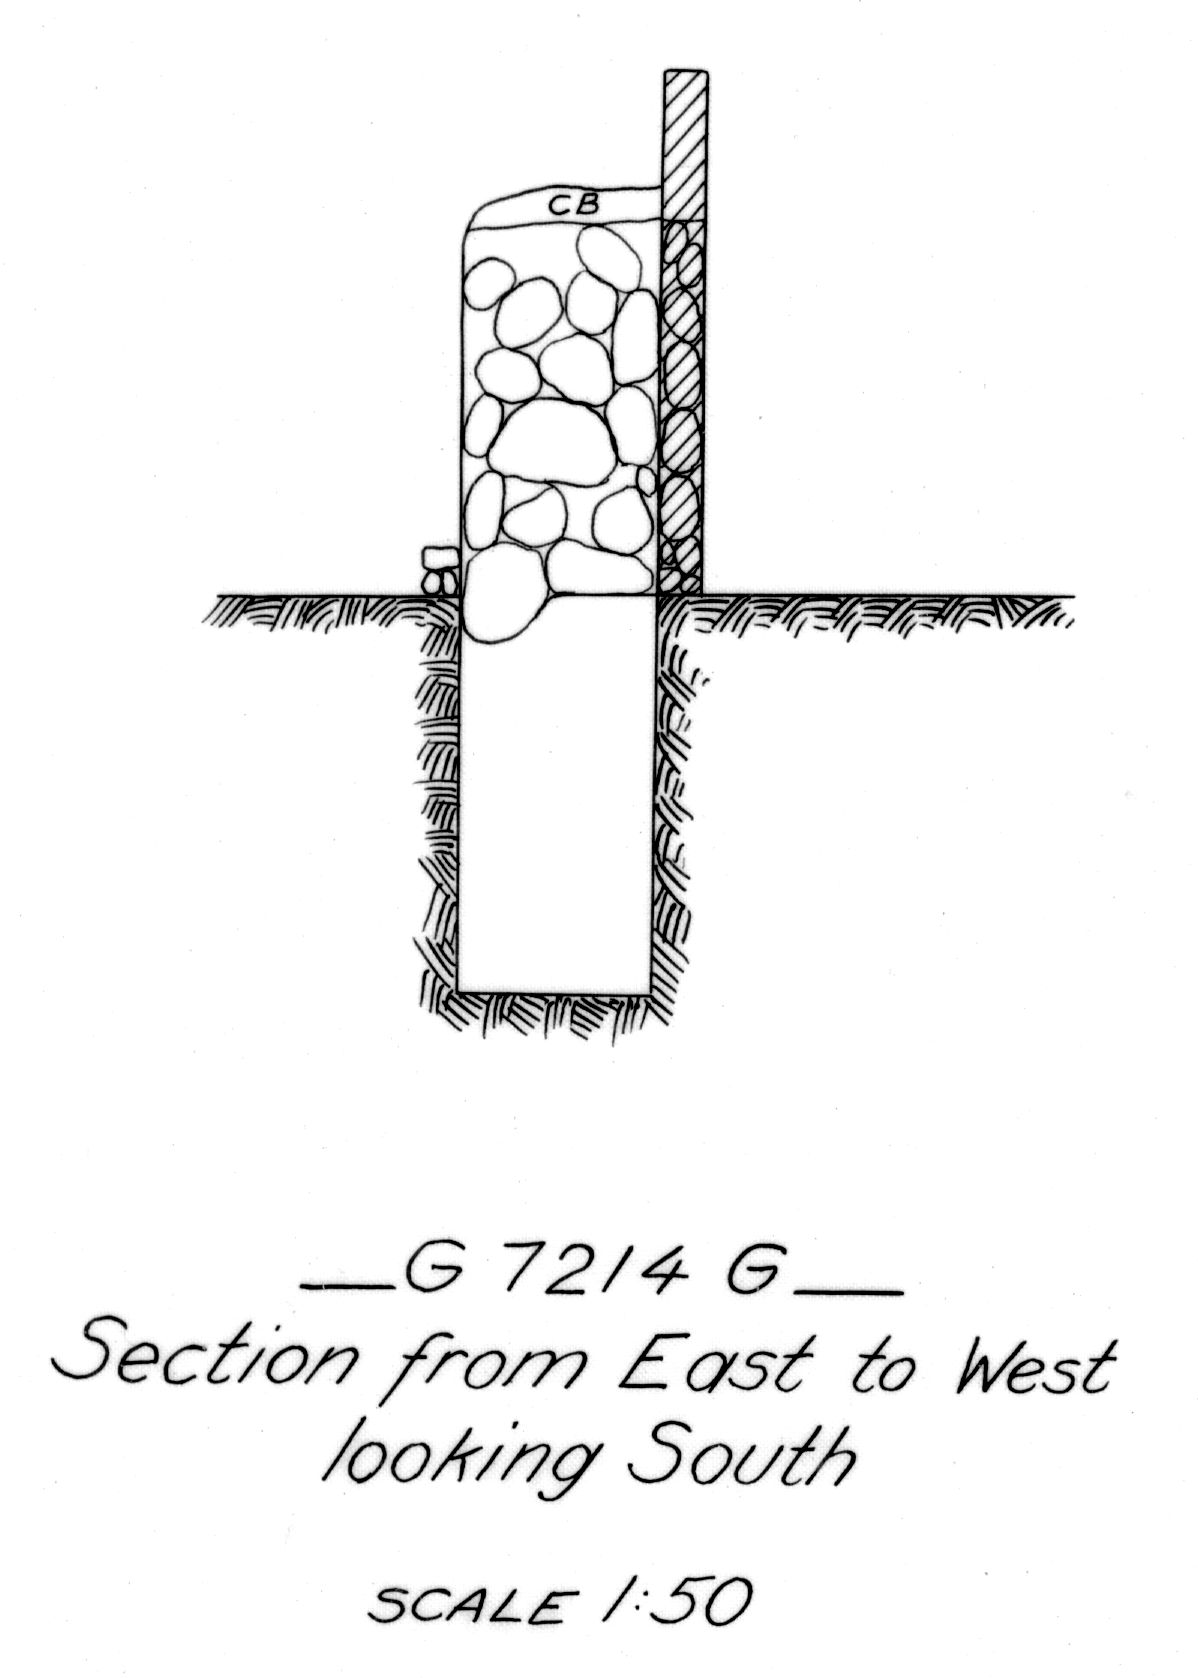 Maps and plans: G 7214, Shaft G